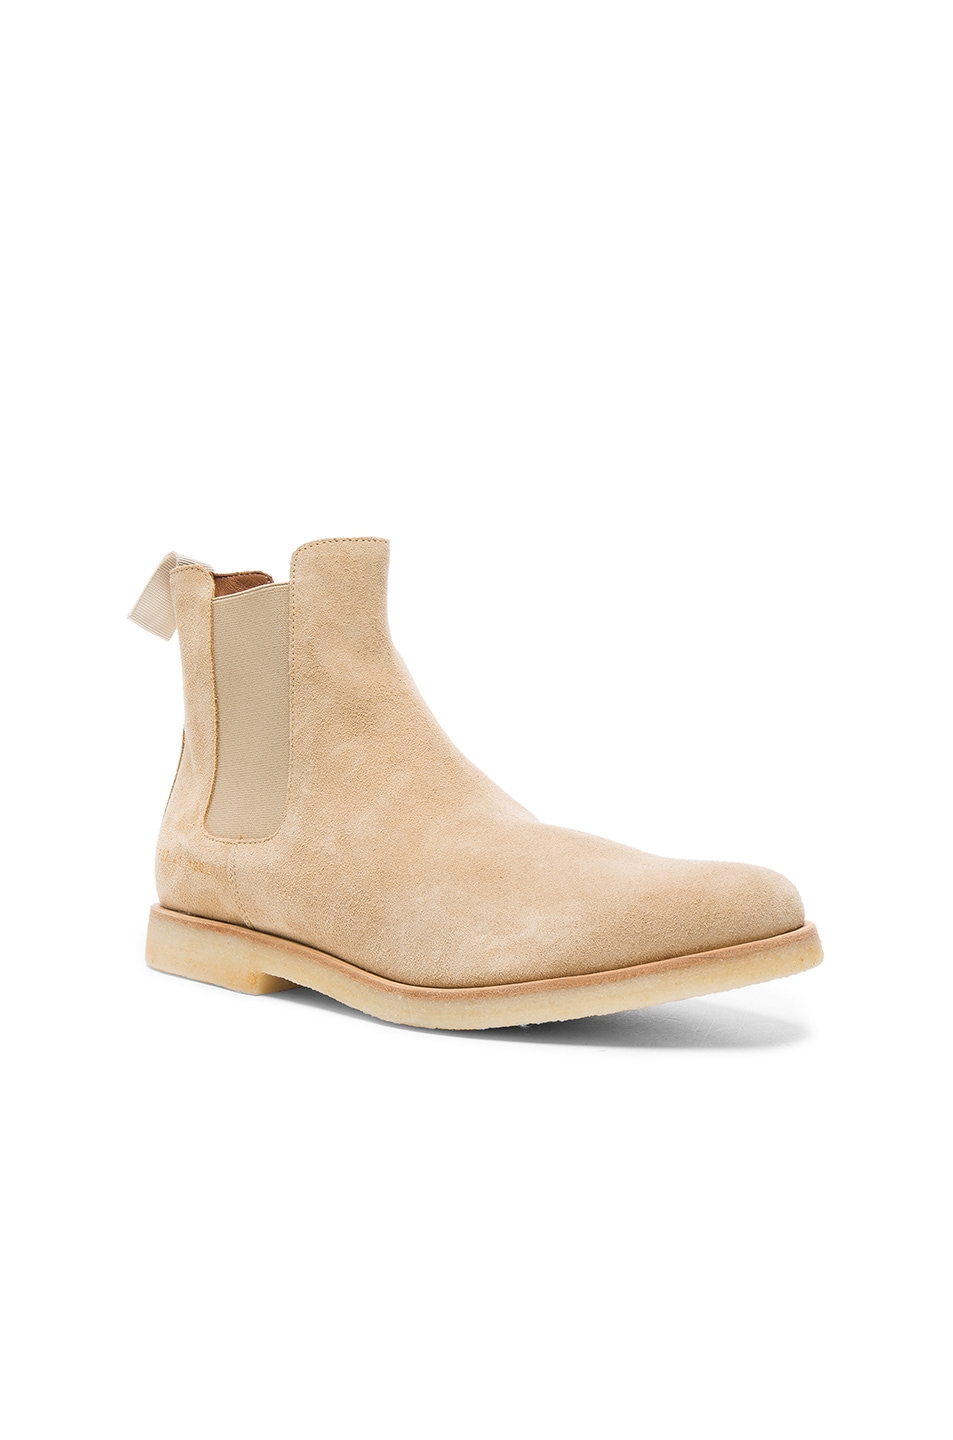 Image 1 of Common Projects Suede Chelsea Boots in Tan